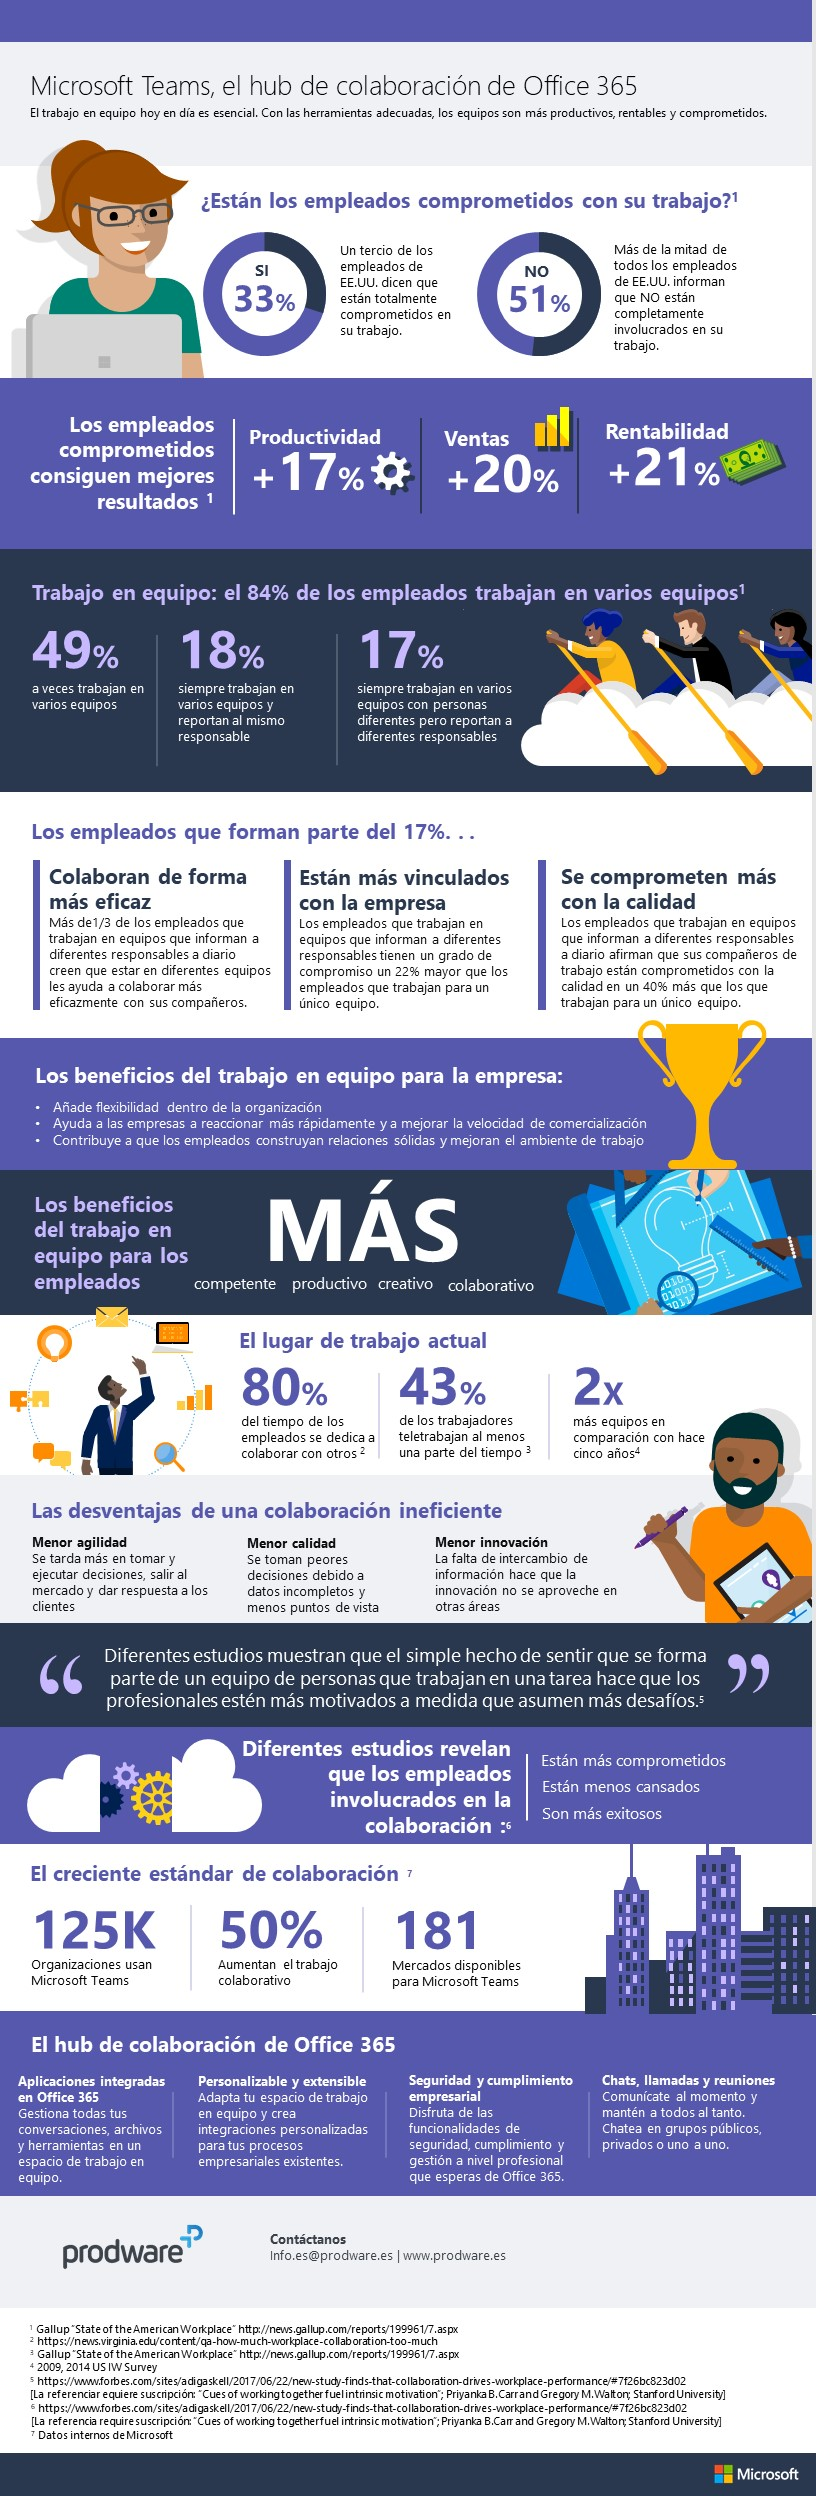 ES_Microsoft Teams Infographic